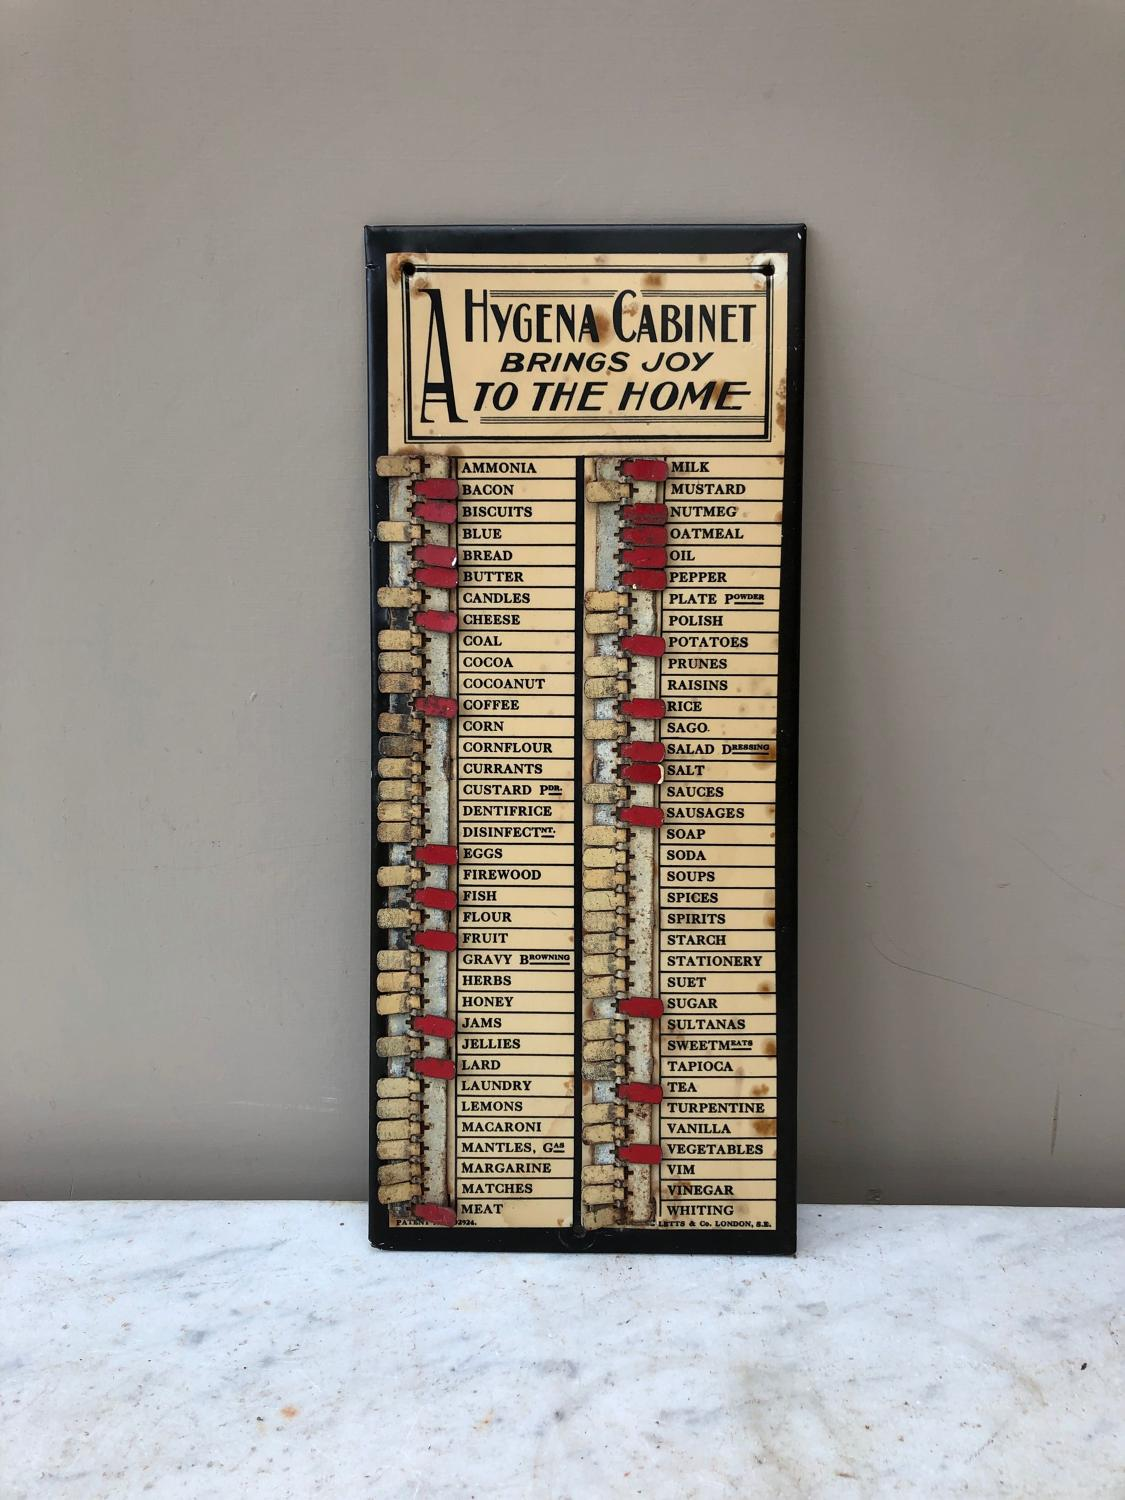 1930s Household Wants Indicator for Hygena Cabinet